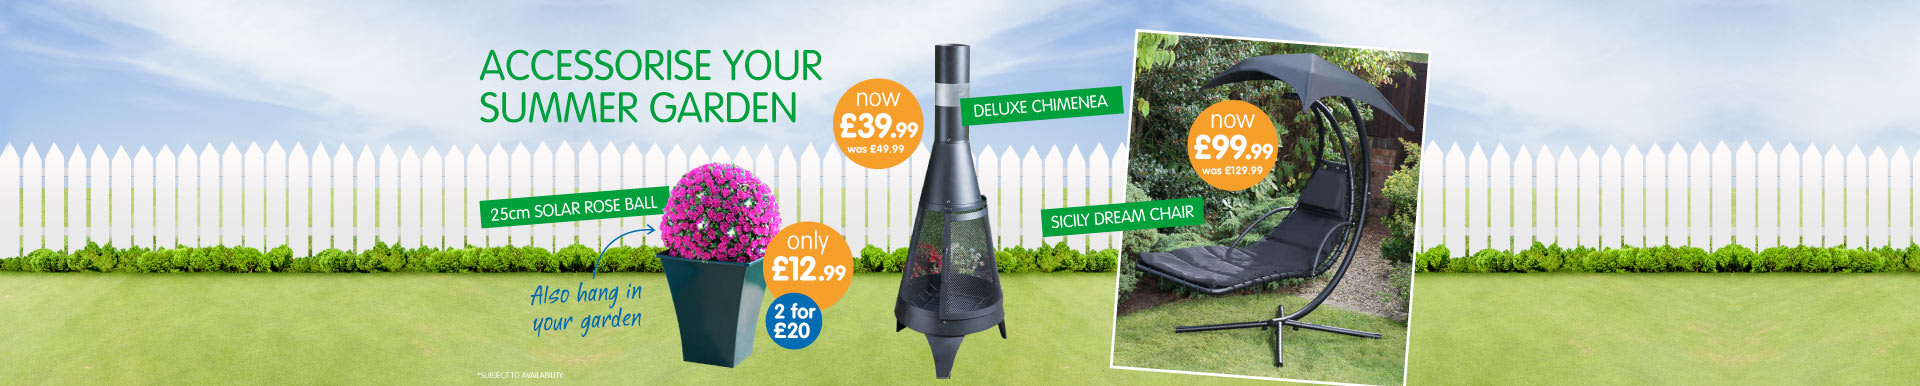 Accessorise your garden this summer and save at B&M.